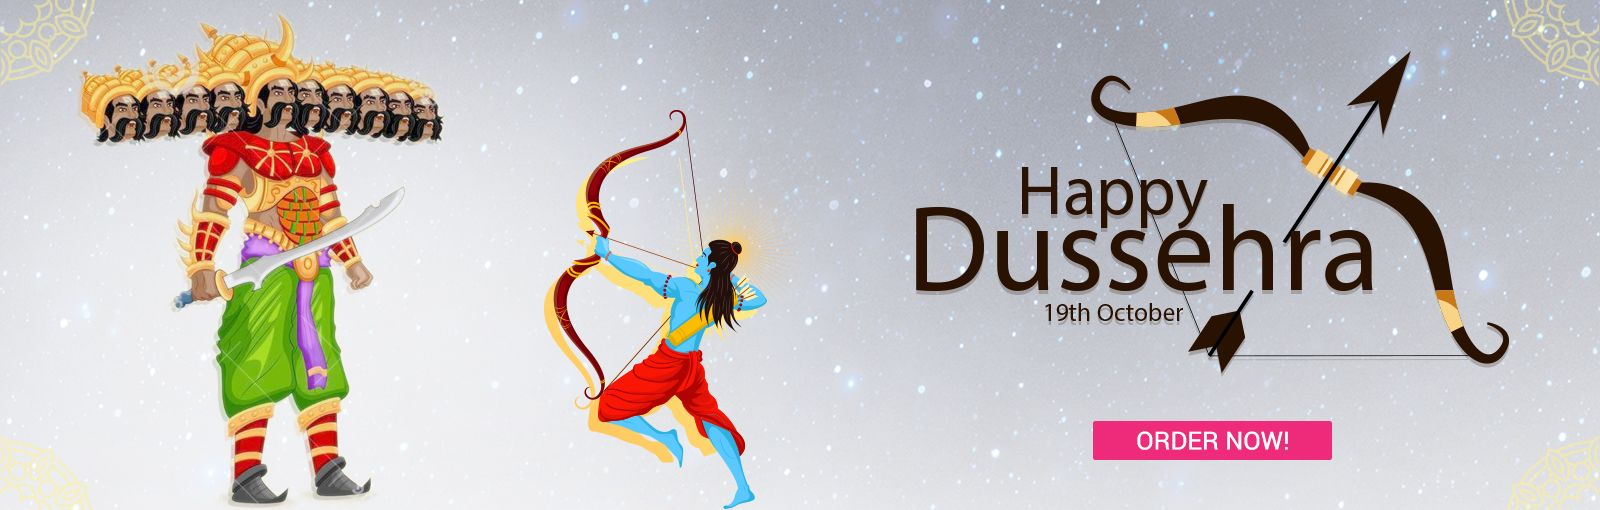 Send Dussehra gifts to India